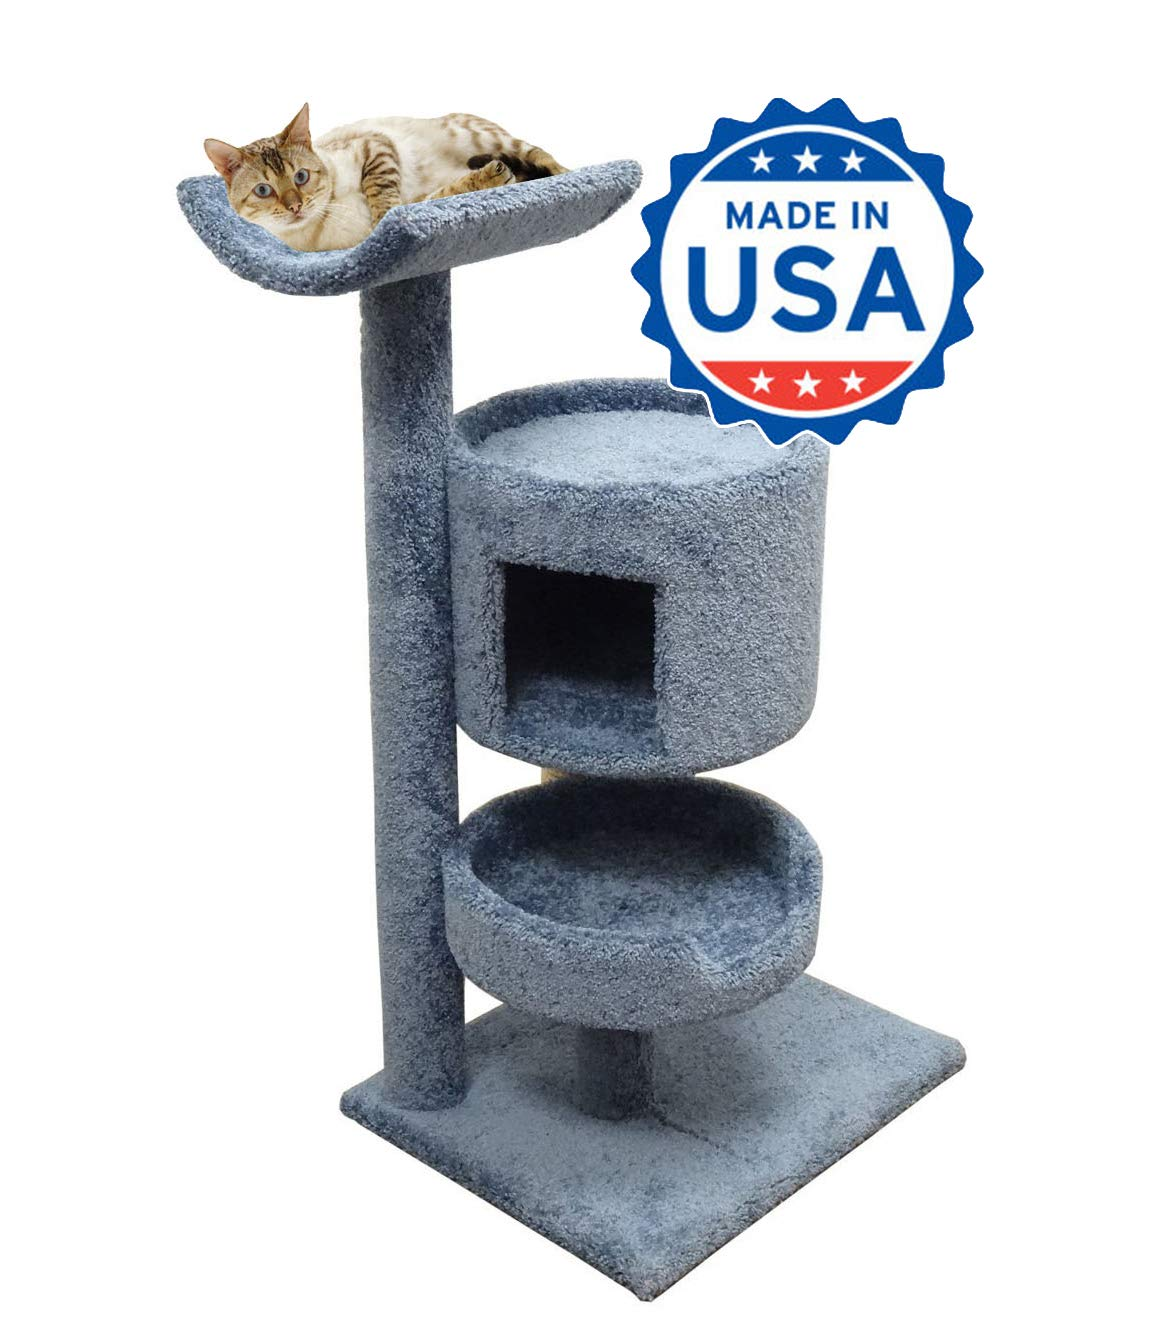 CozyCatFurniture 45 inches Wooden Cat Furniture with Large Kitty Bed & Condo, 3 Tier Cat Tree Tower in Blue Carpet by CozyCatFurniture